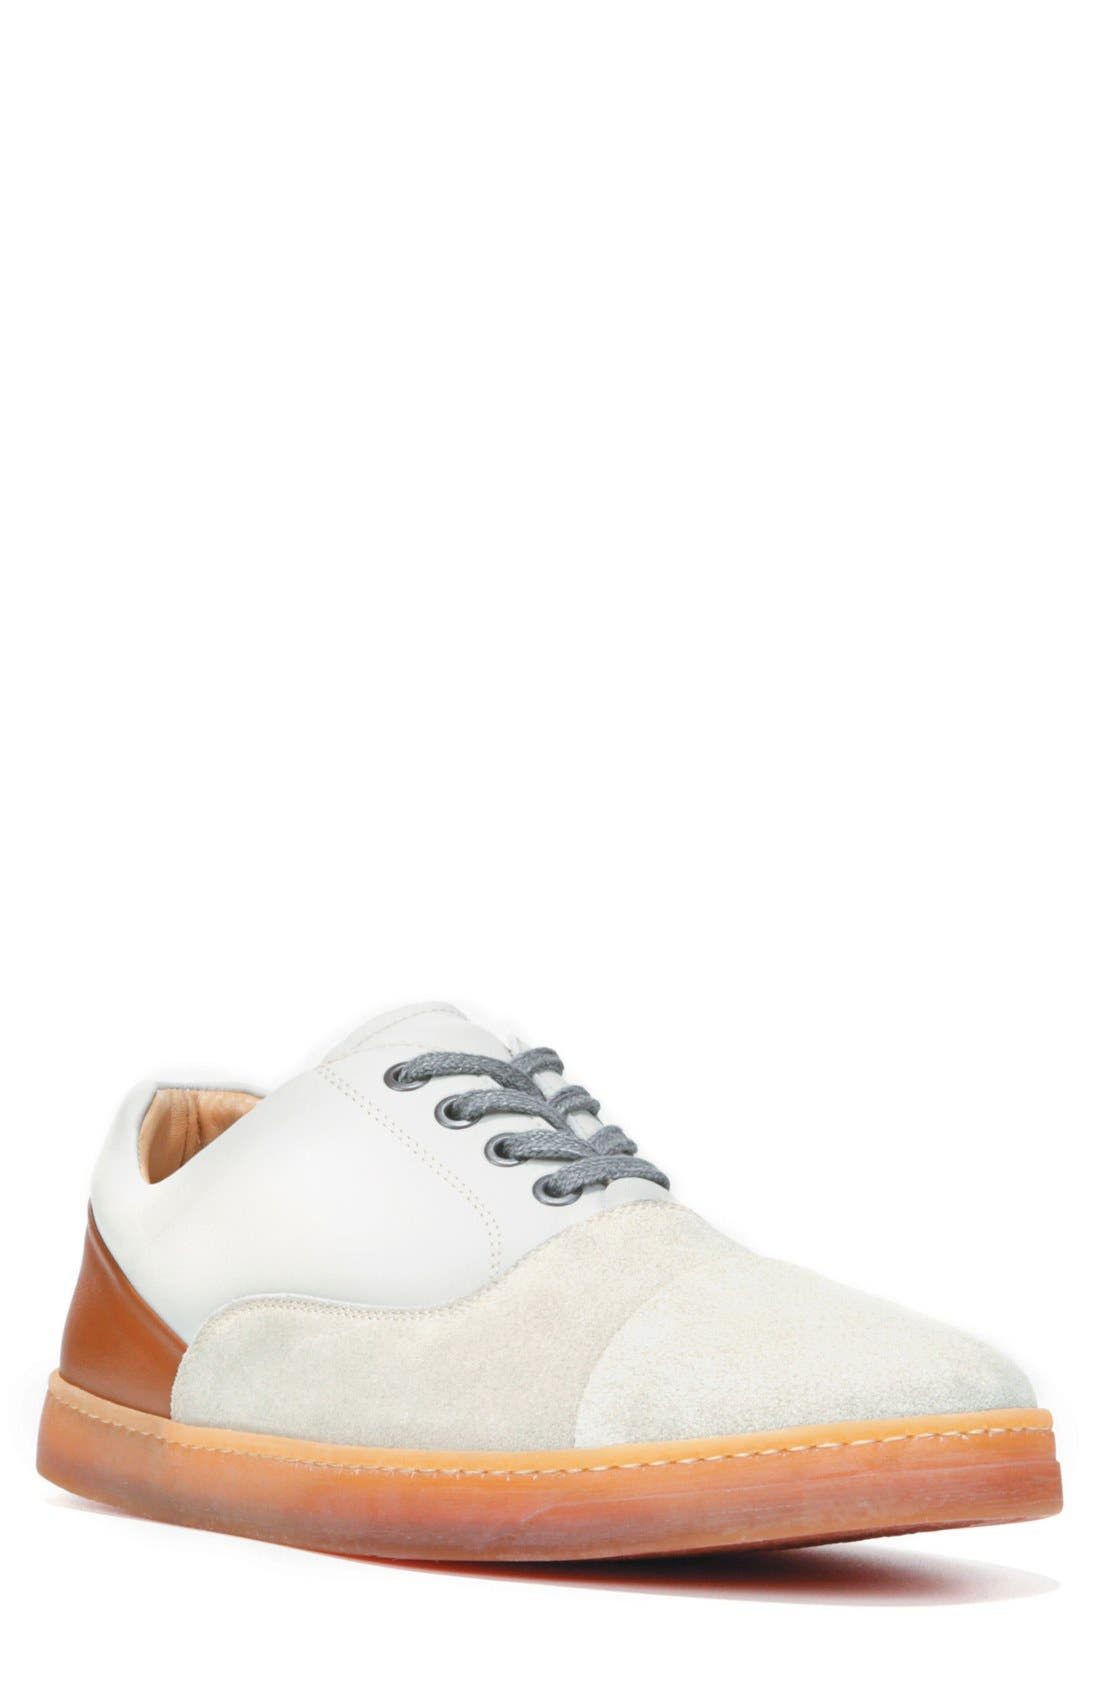 Baldwin Sneaker,                         Main,                         color, Grey Suede